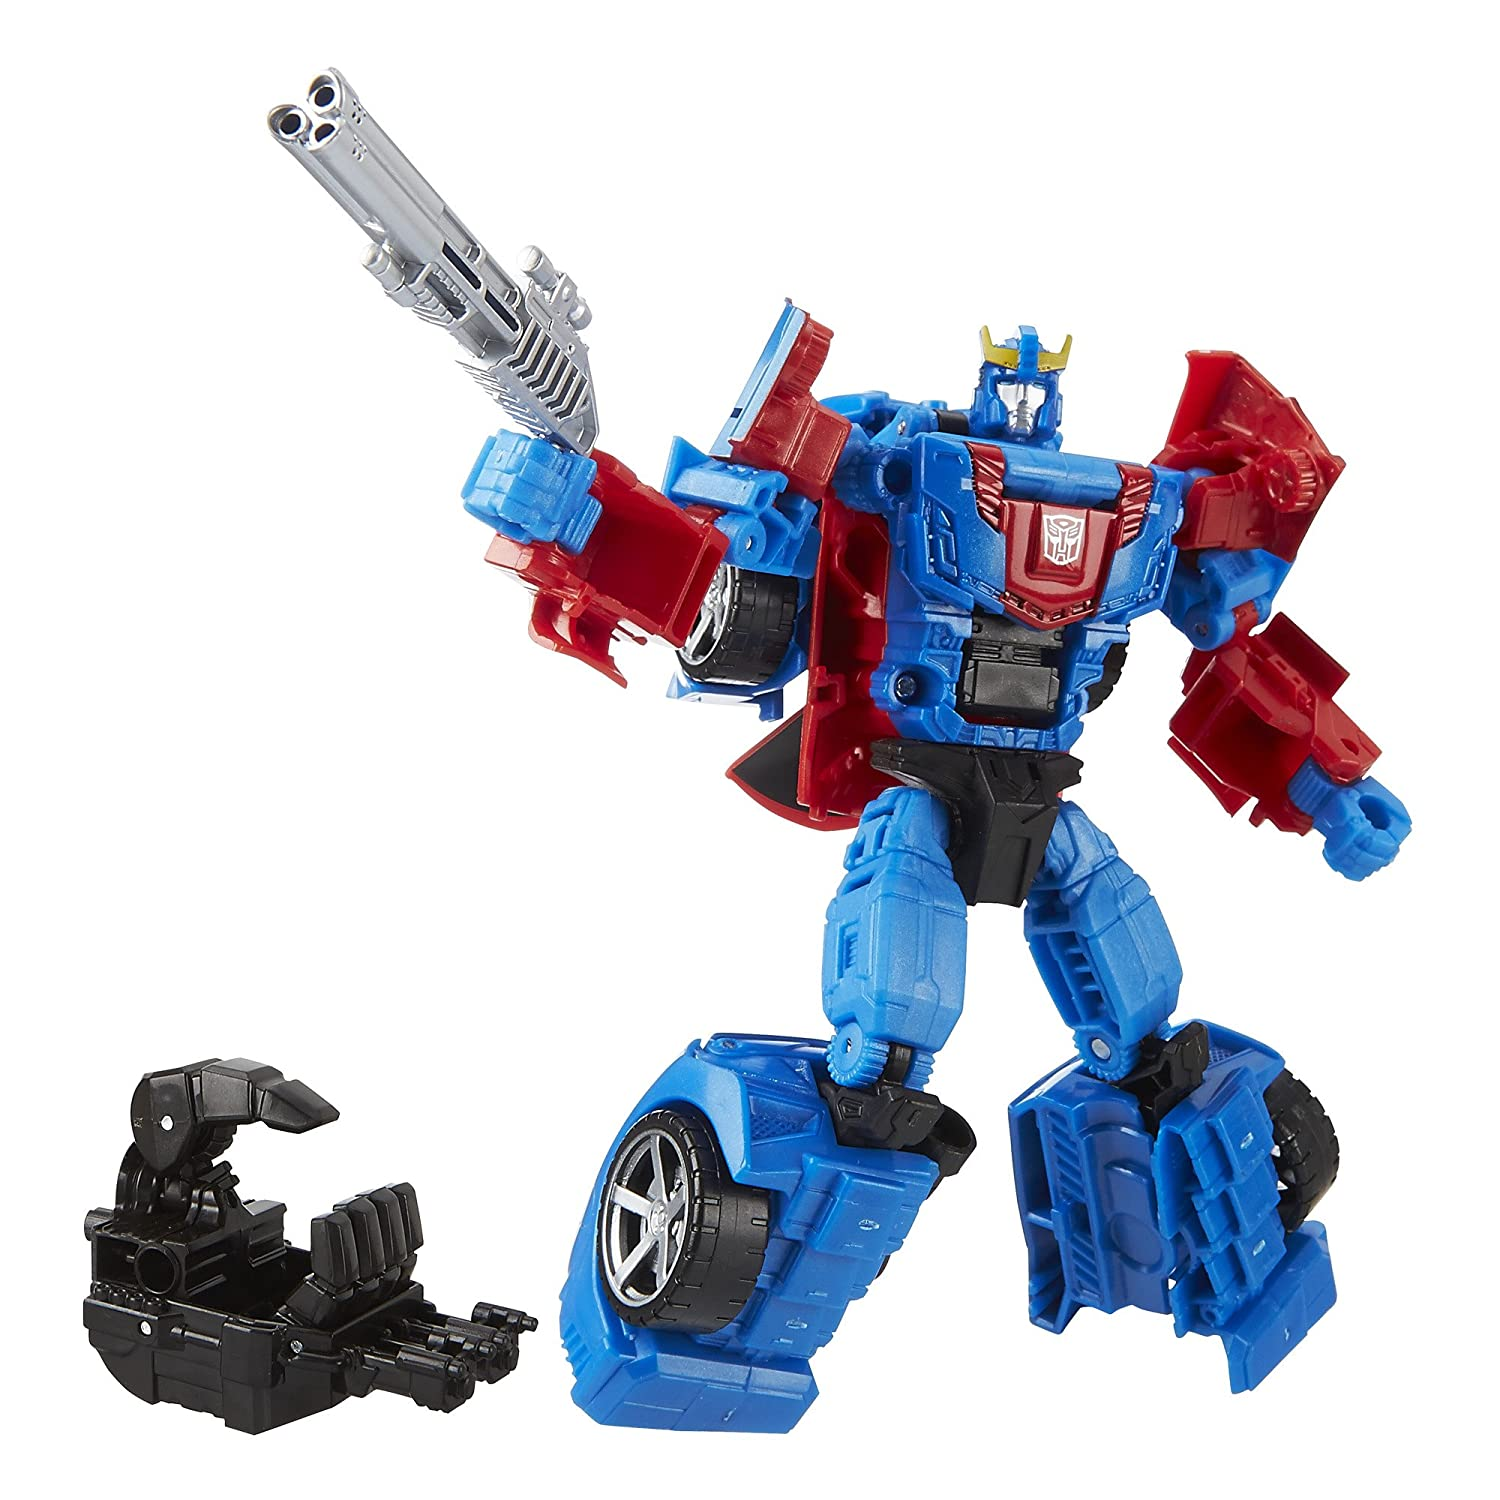 Transformers Generations Combiner Wars Deluxe Class Smokescreen Hasbro B5607